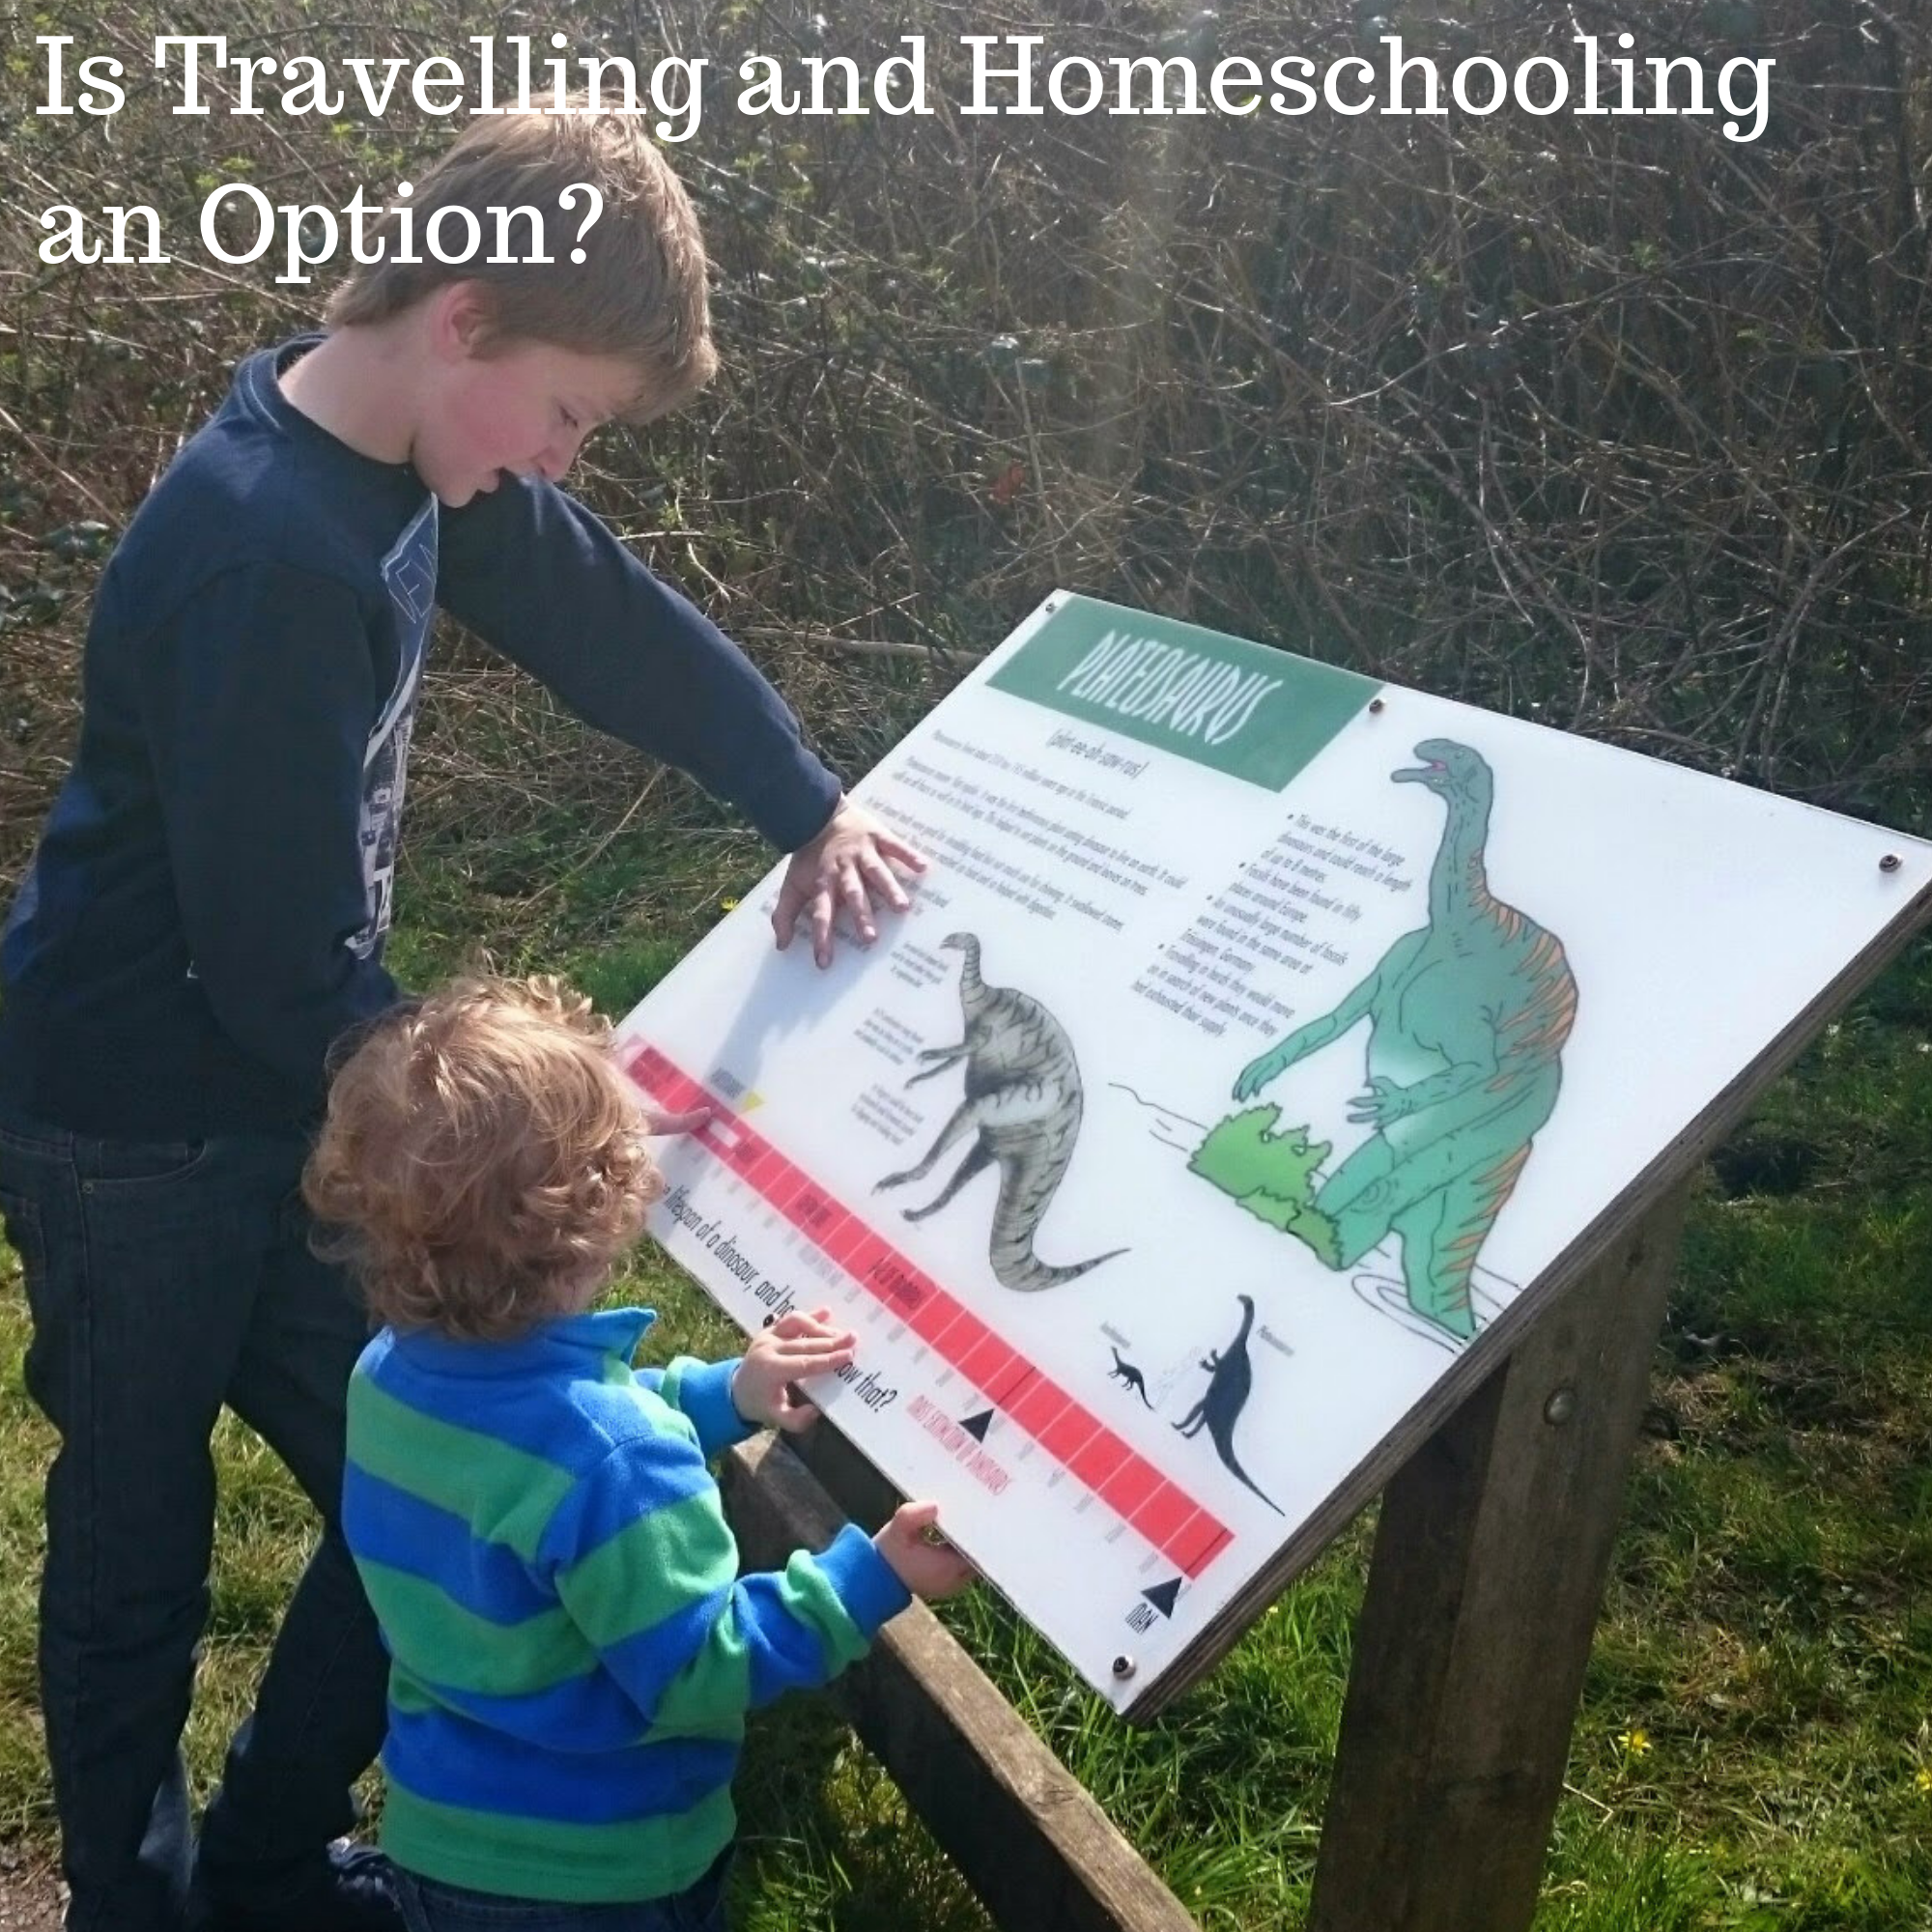 Is Travelling and Homeschooling an Option?